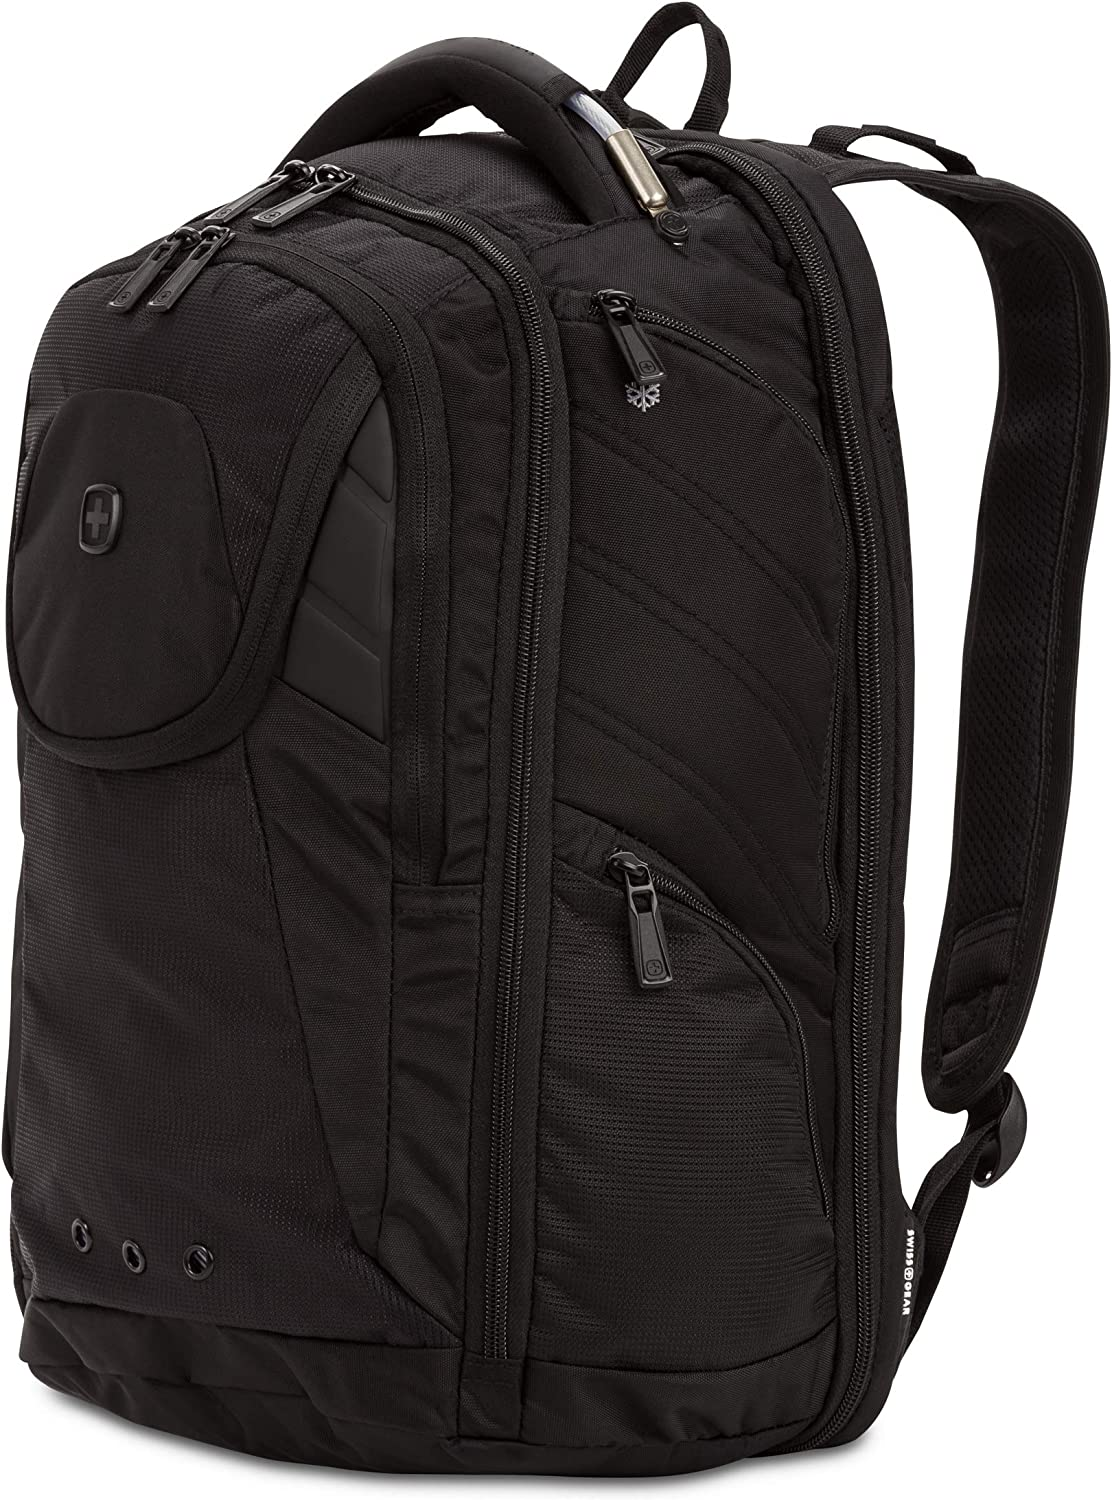 swissgear laptop backpack review